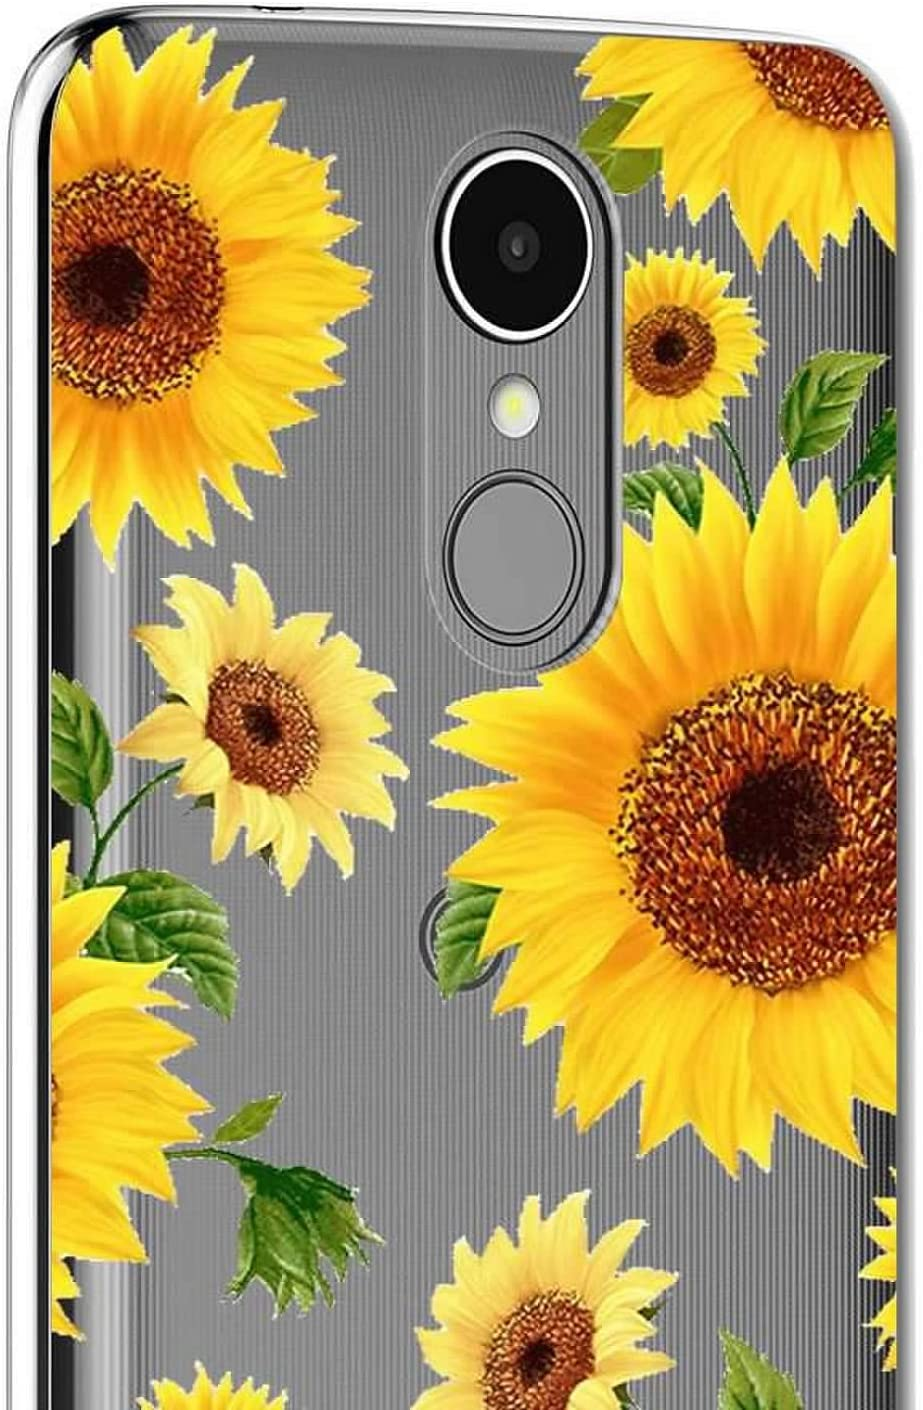 2 Pack for LG Aristo Transparent for LG Risio 2 LTE LG Fortune Case + 3 in 1 LG K8 2017 LG Phoenix 3 Sunflower Glass Screen Protector Slim Clear Soft TPU Silicone Phone Case Cover with